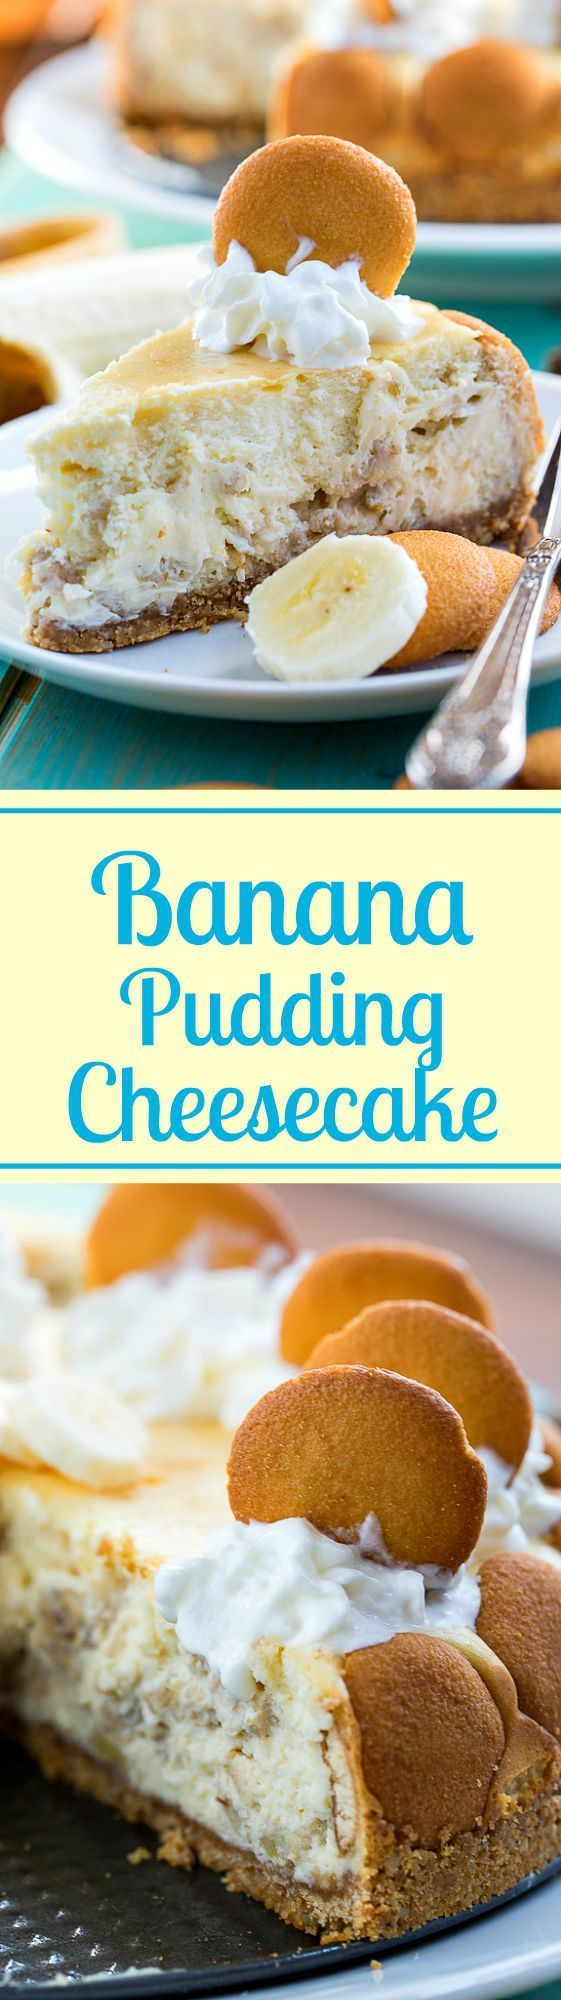 Banana Pudding Cheesecake filling is creamy and rich with just the right amount of banana flavor. Top off with whipped cream and vanilla wafers and you have a showstopper southern dessert!